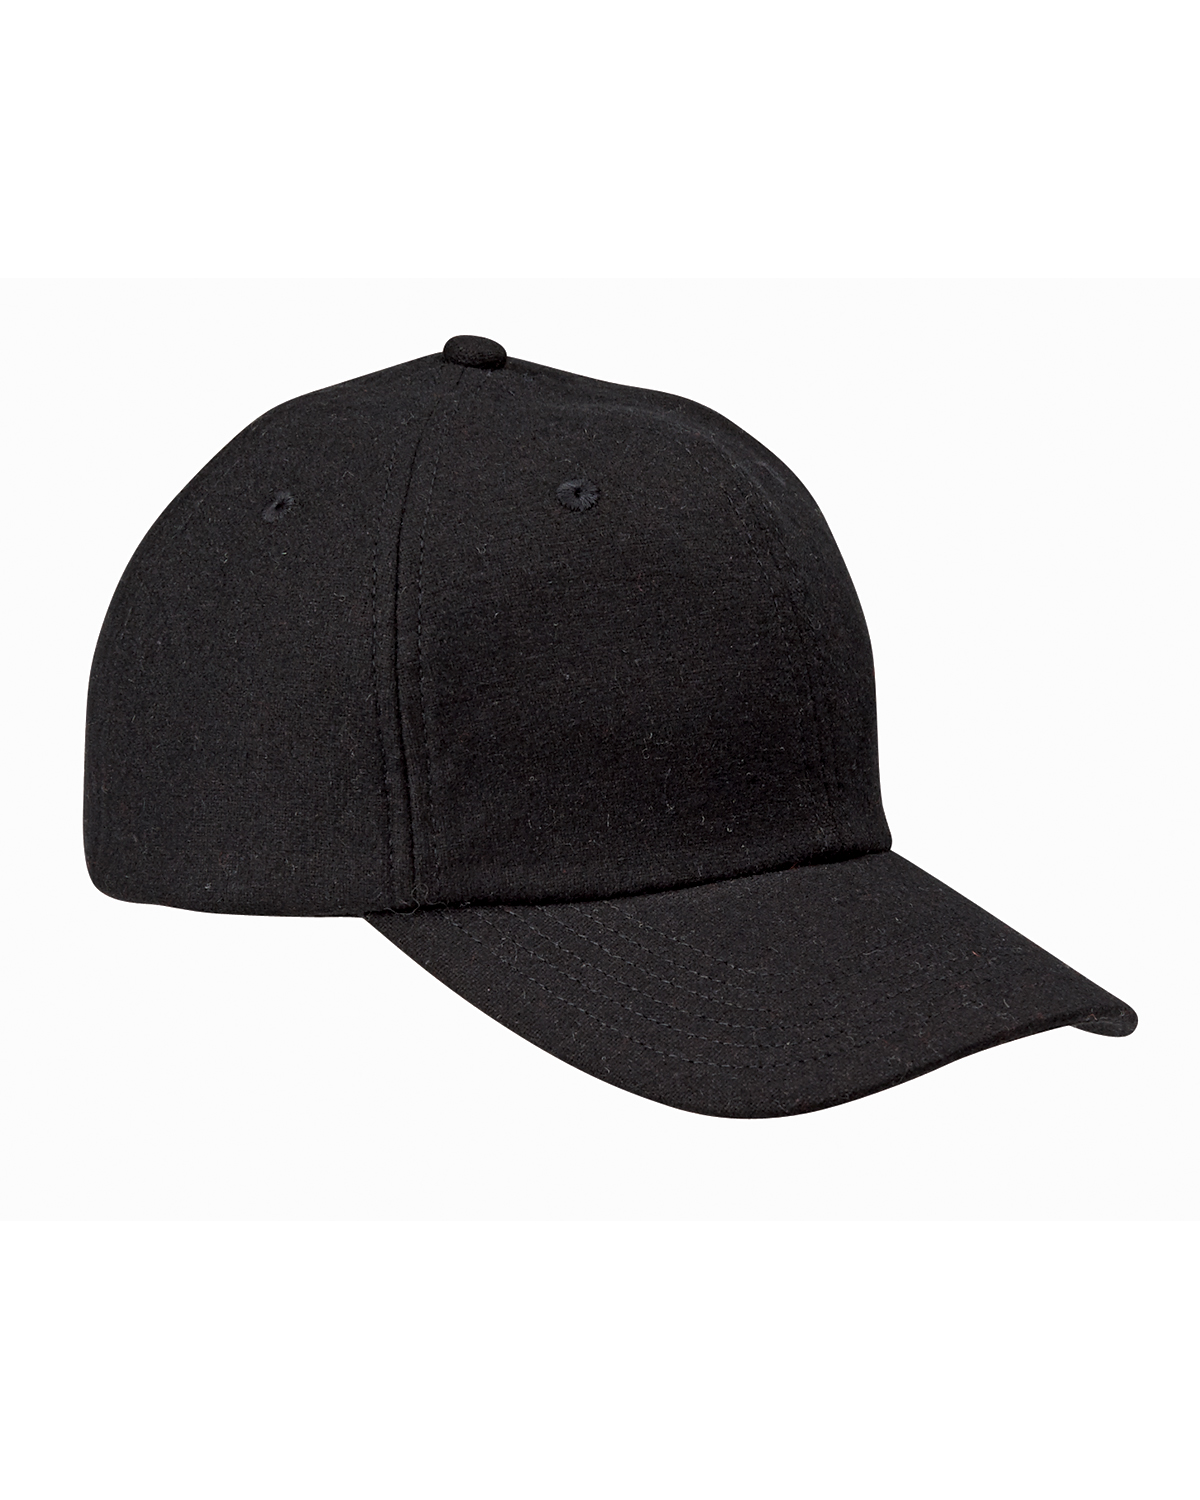 Flat Billed Hats for Guys | Wool Baseball Cap | Cooperstown Hats